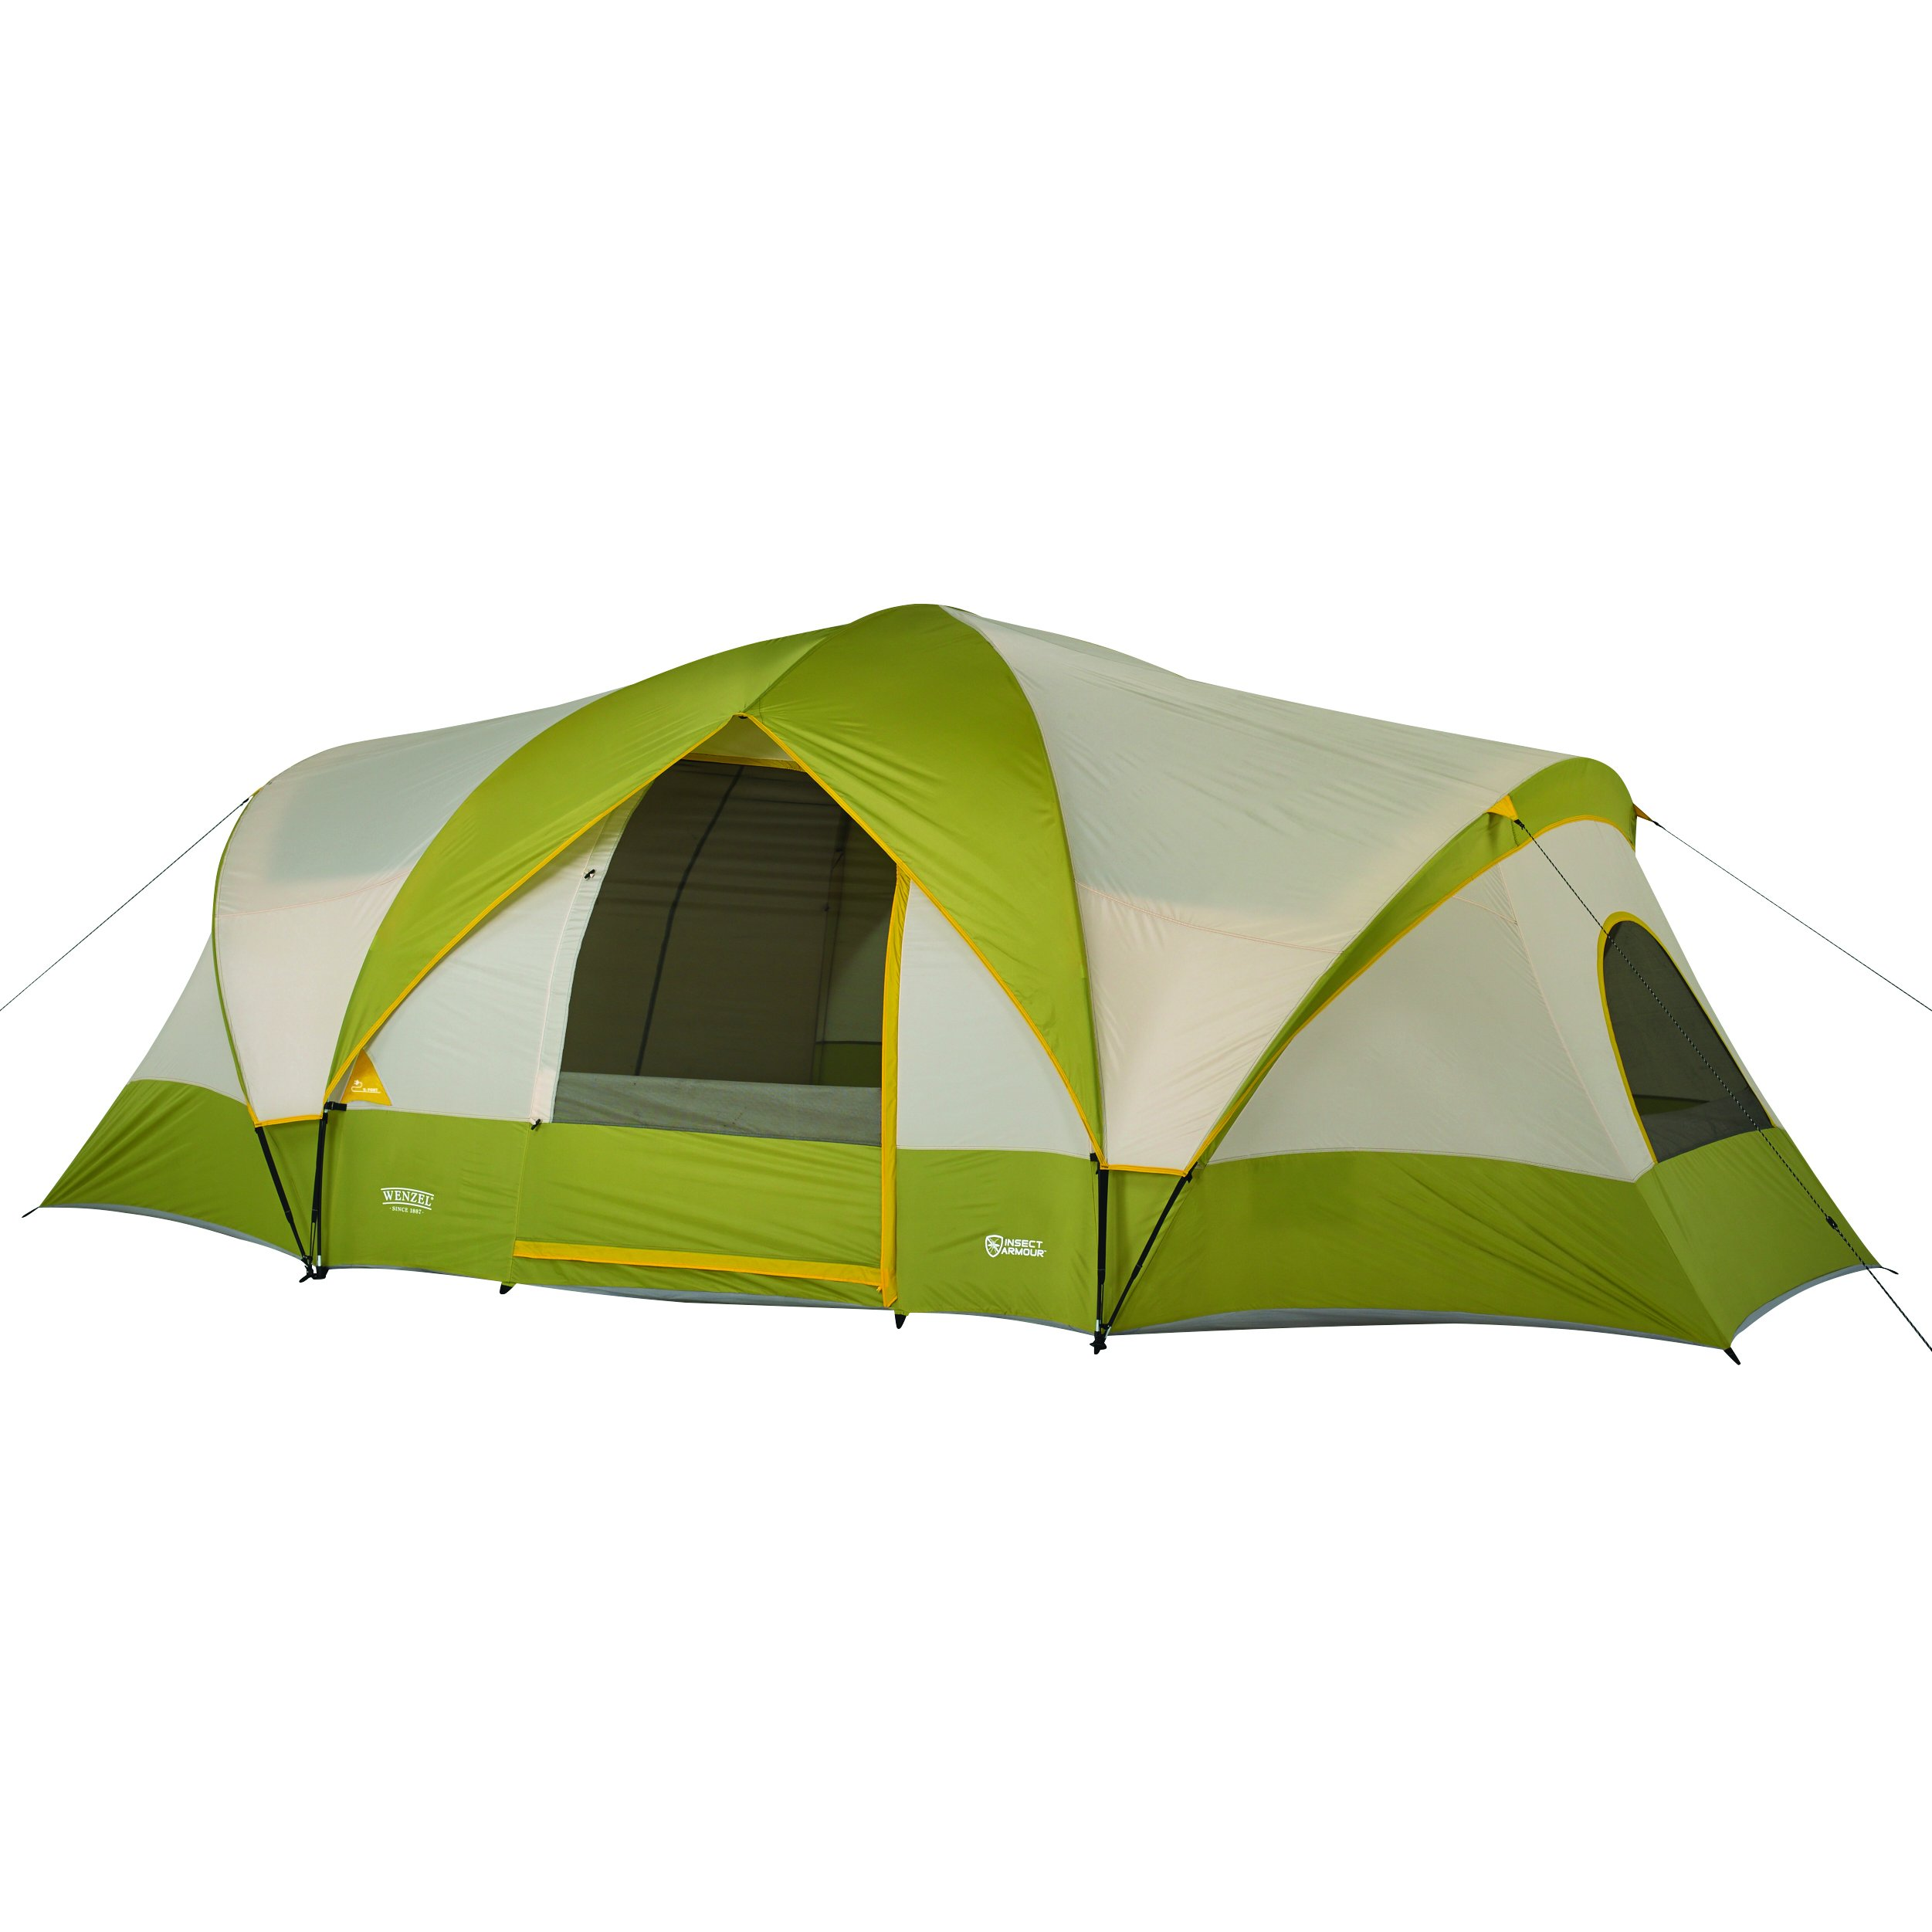 Wenzel Insect Armour 10 Tent, 18 x 10-Feet